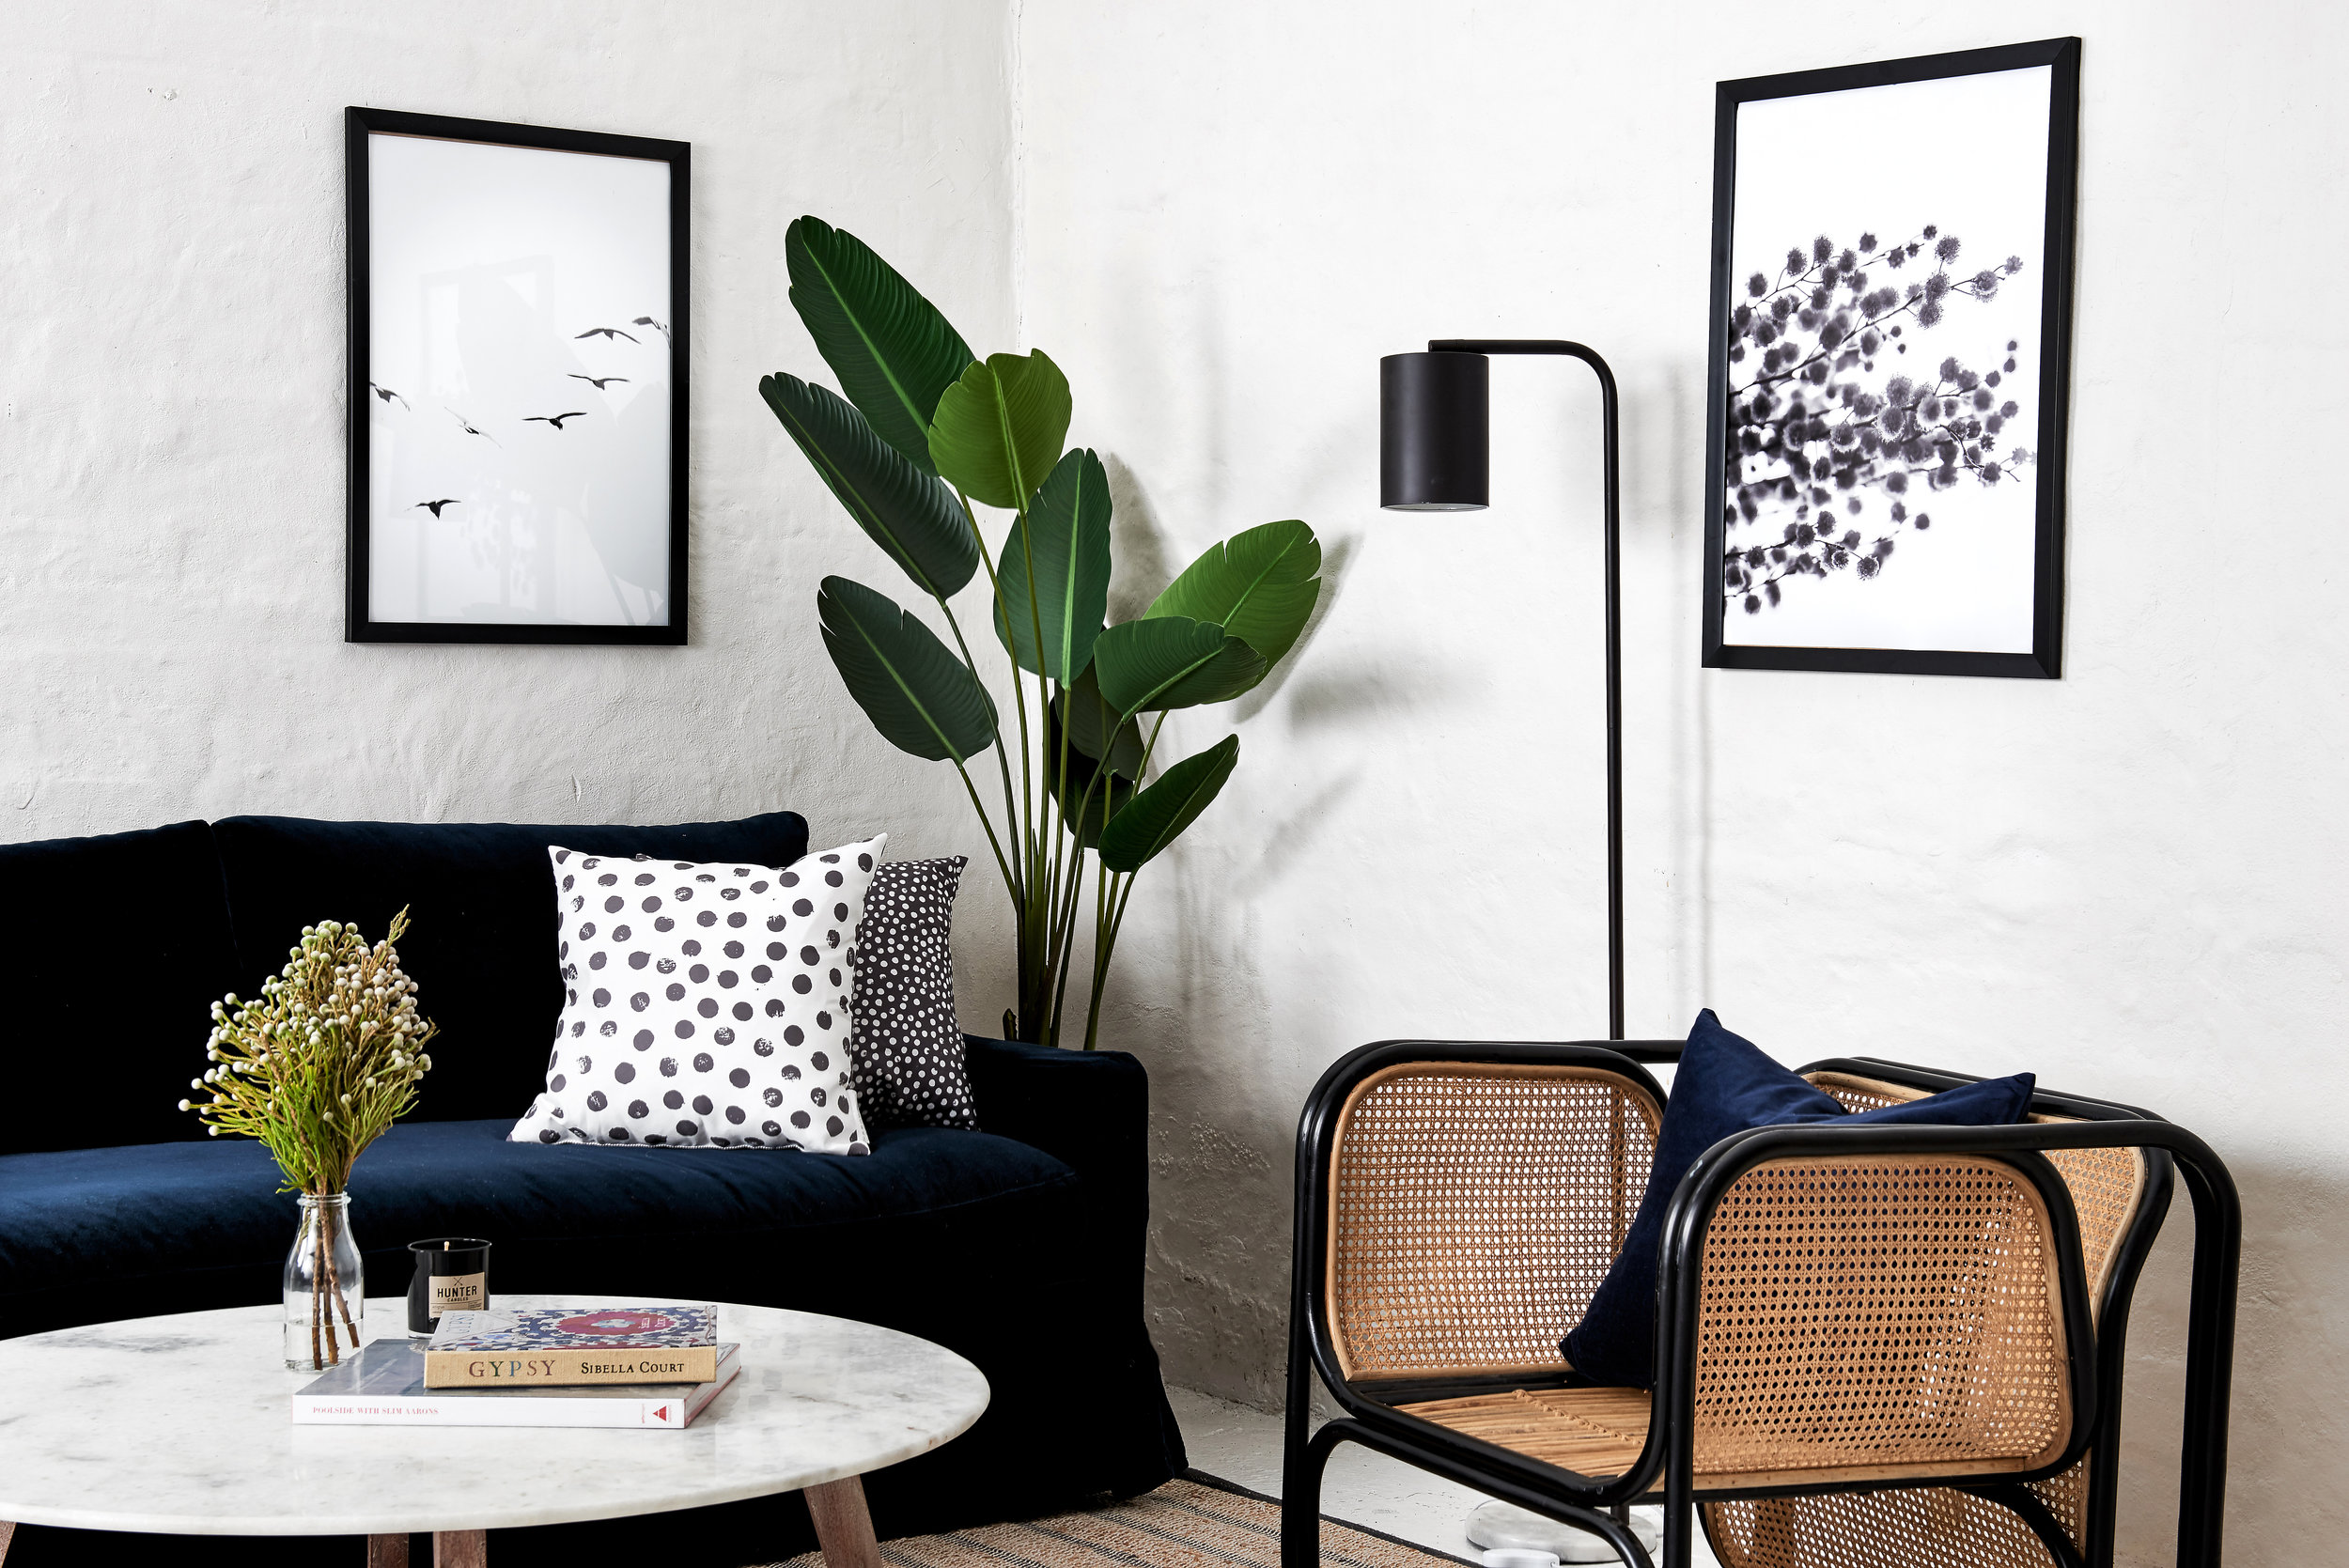 Lounge Room Designed by Hayward & Co. Photography by Ryan Linnegar.